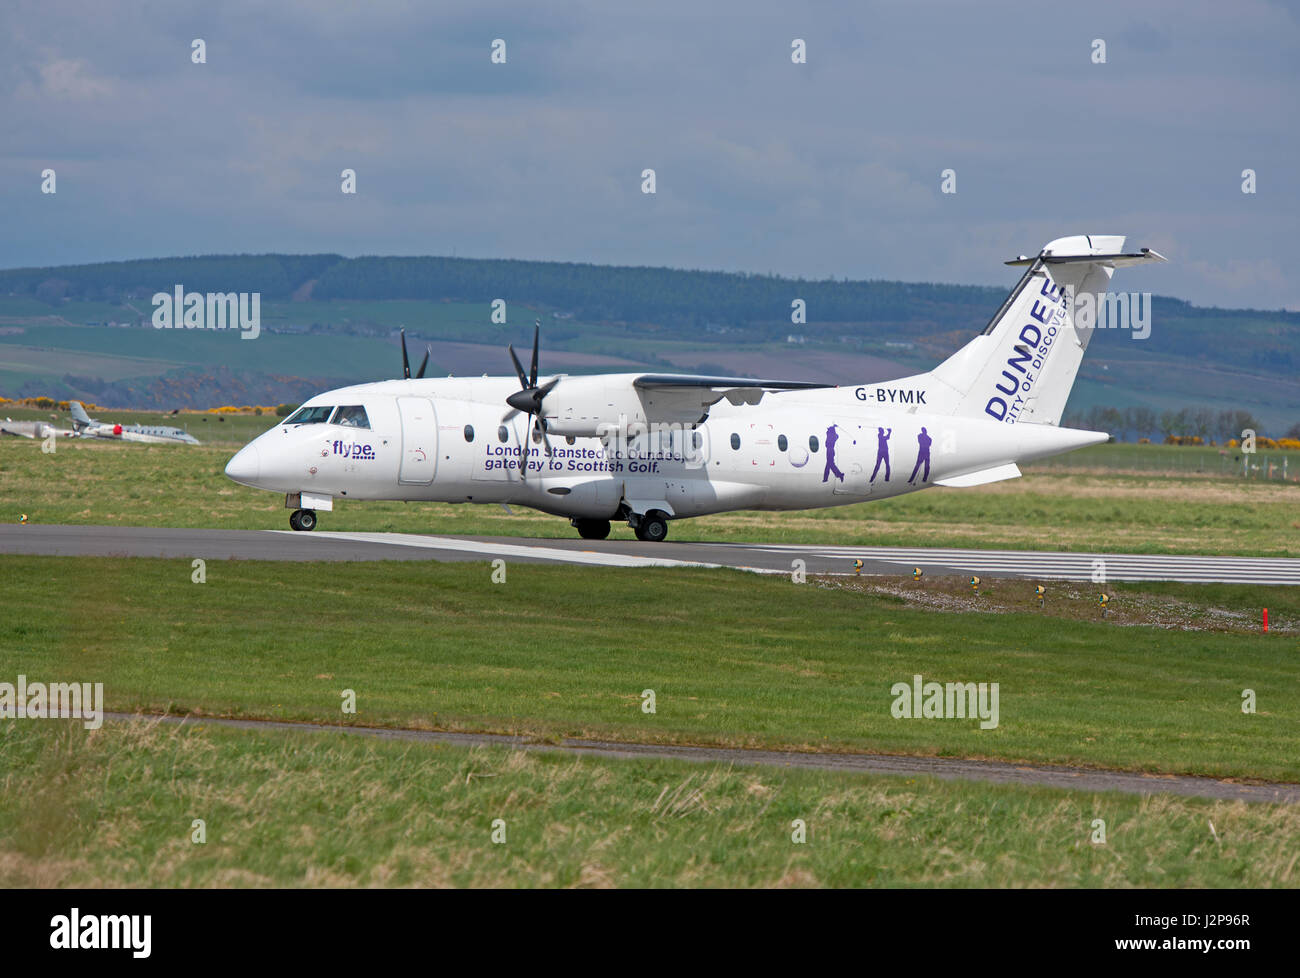 A Dornier 328-100 turboprop 33 seat passenger aircraft arriving at Inverness Dalcross Airport in the Scottish Highlands. - Stock Image